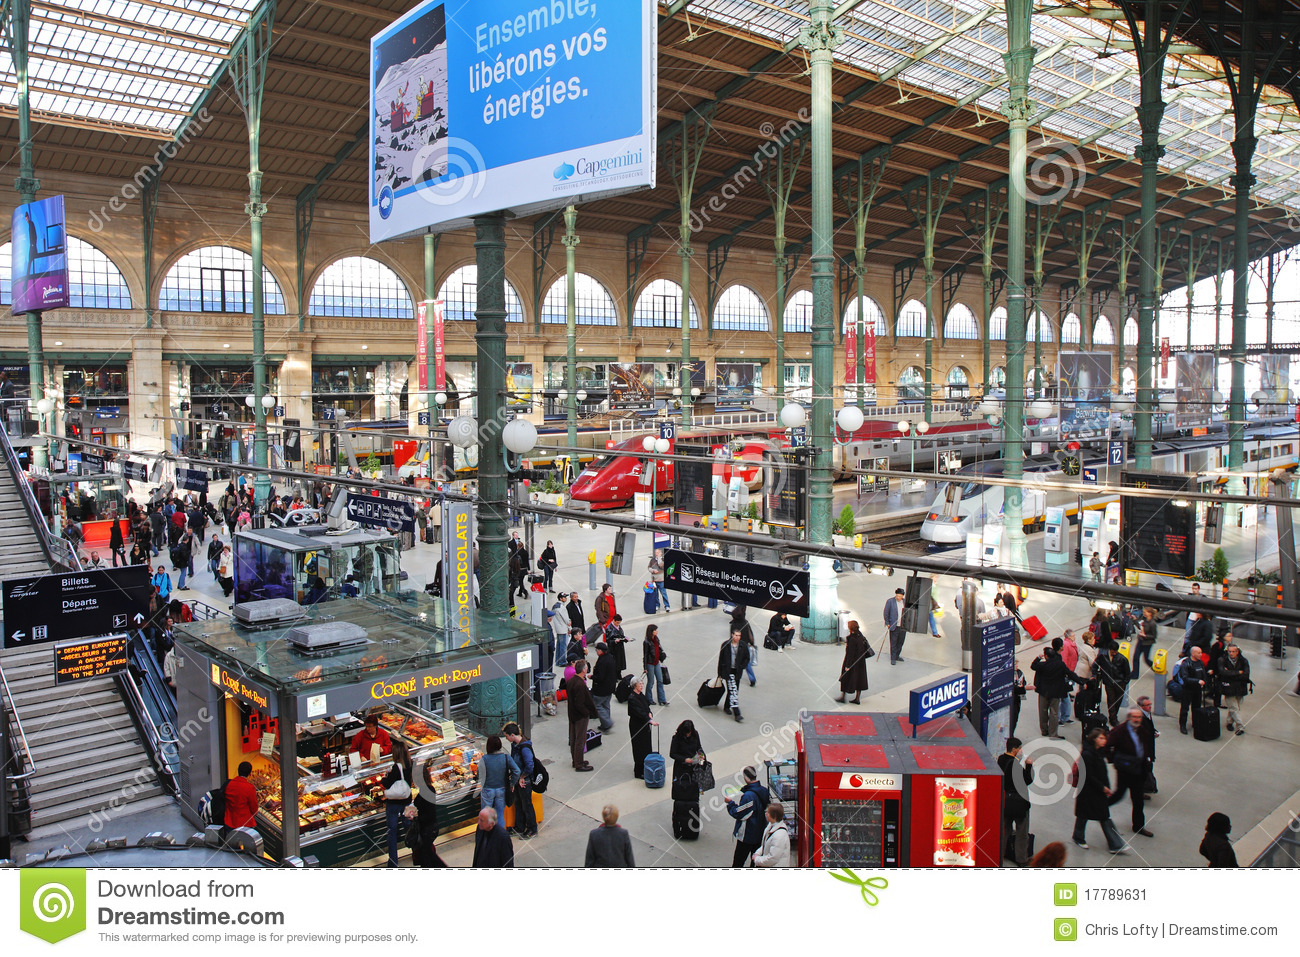 bahnhof paris gare du nord redaktionelles foto bild von tourismus 17789631. Black Bedroom Furniture Sets. Home Design Ideas